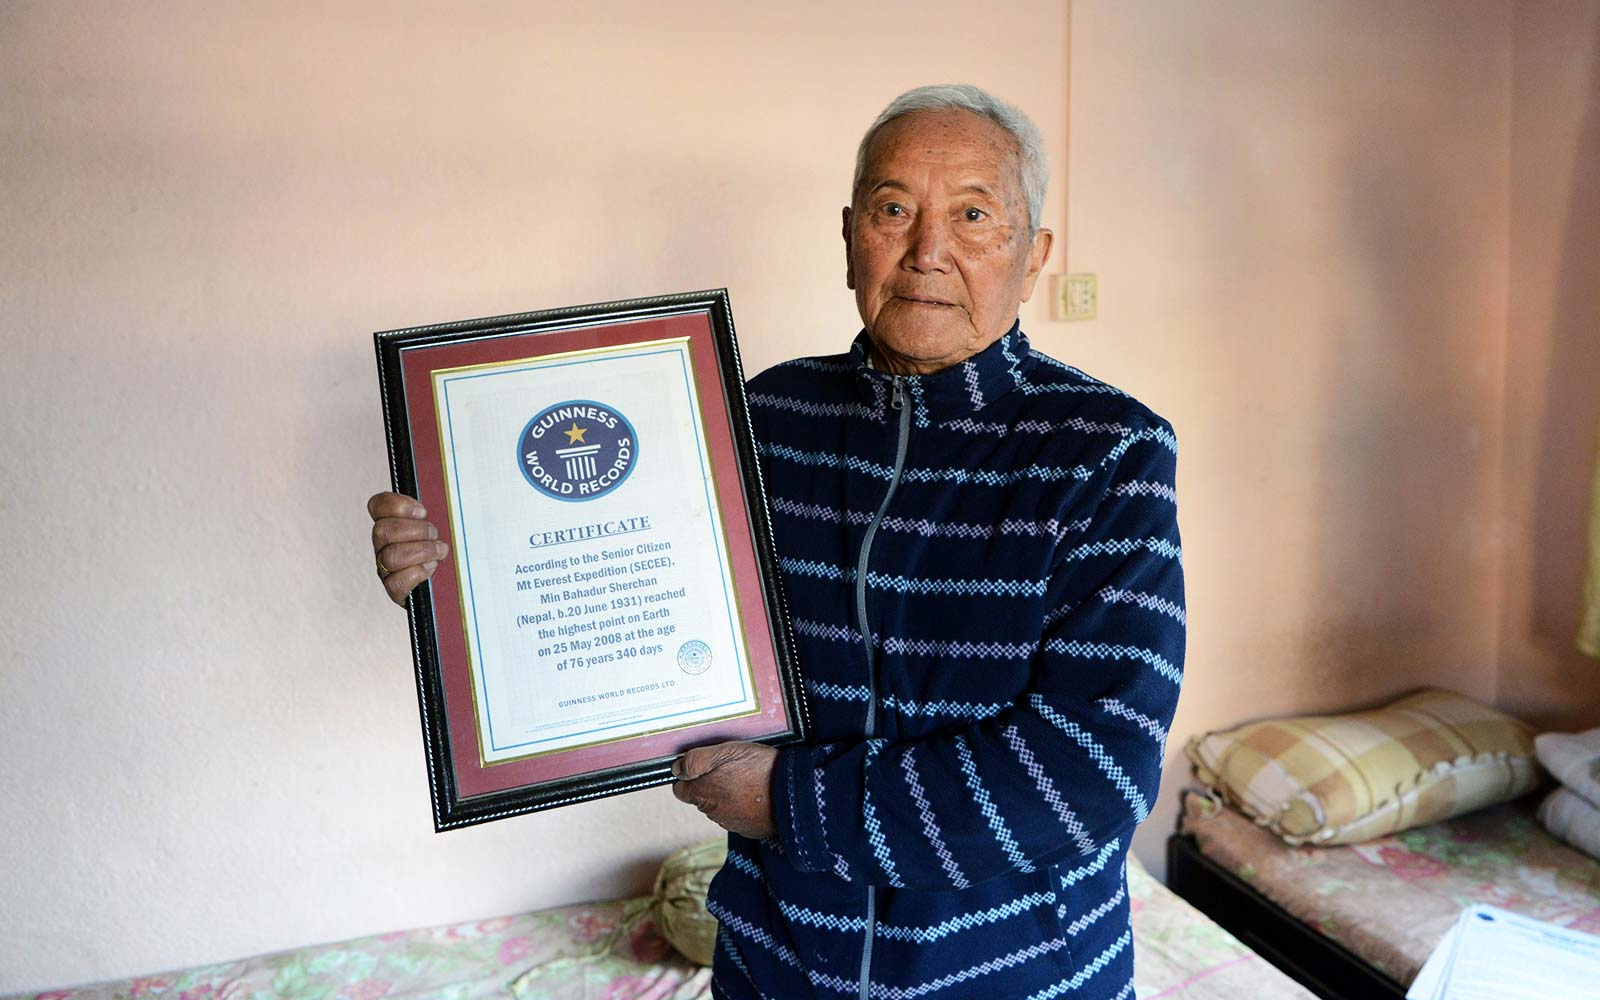 85-year-old dies while attempting to reclaim record as oldest climber of Mount Everest